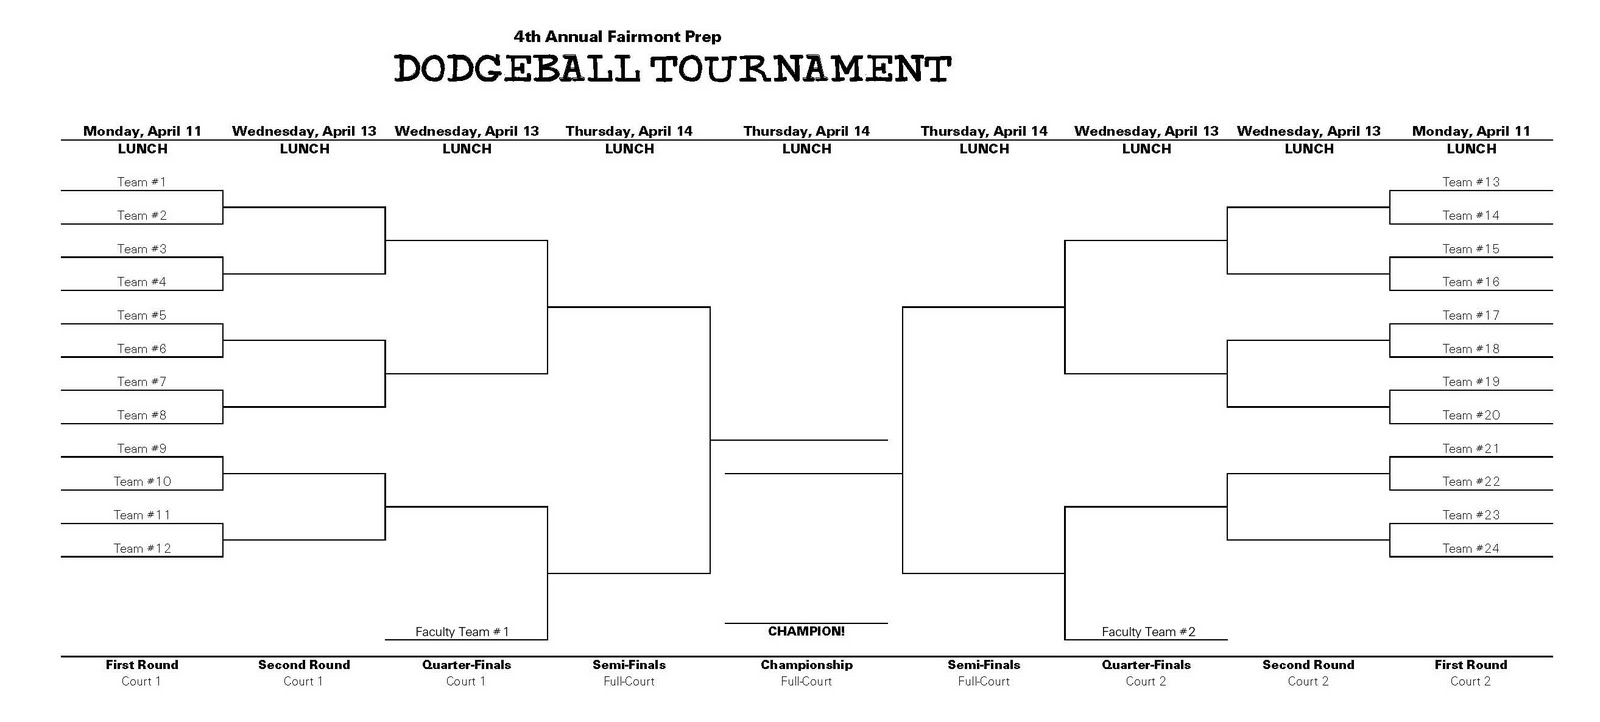 ... 2016 march madness. 16 double elimination double elimination. Example